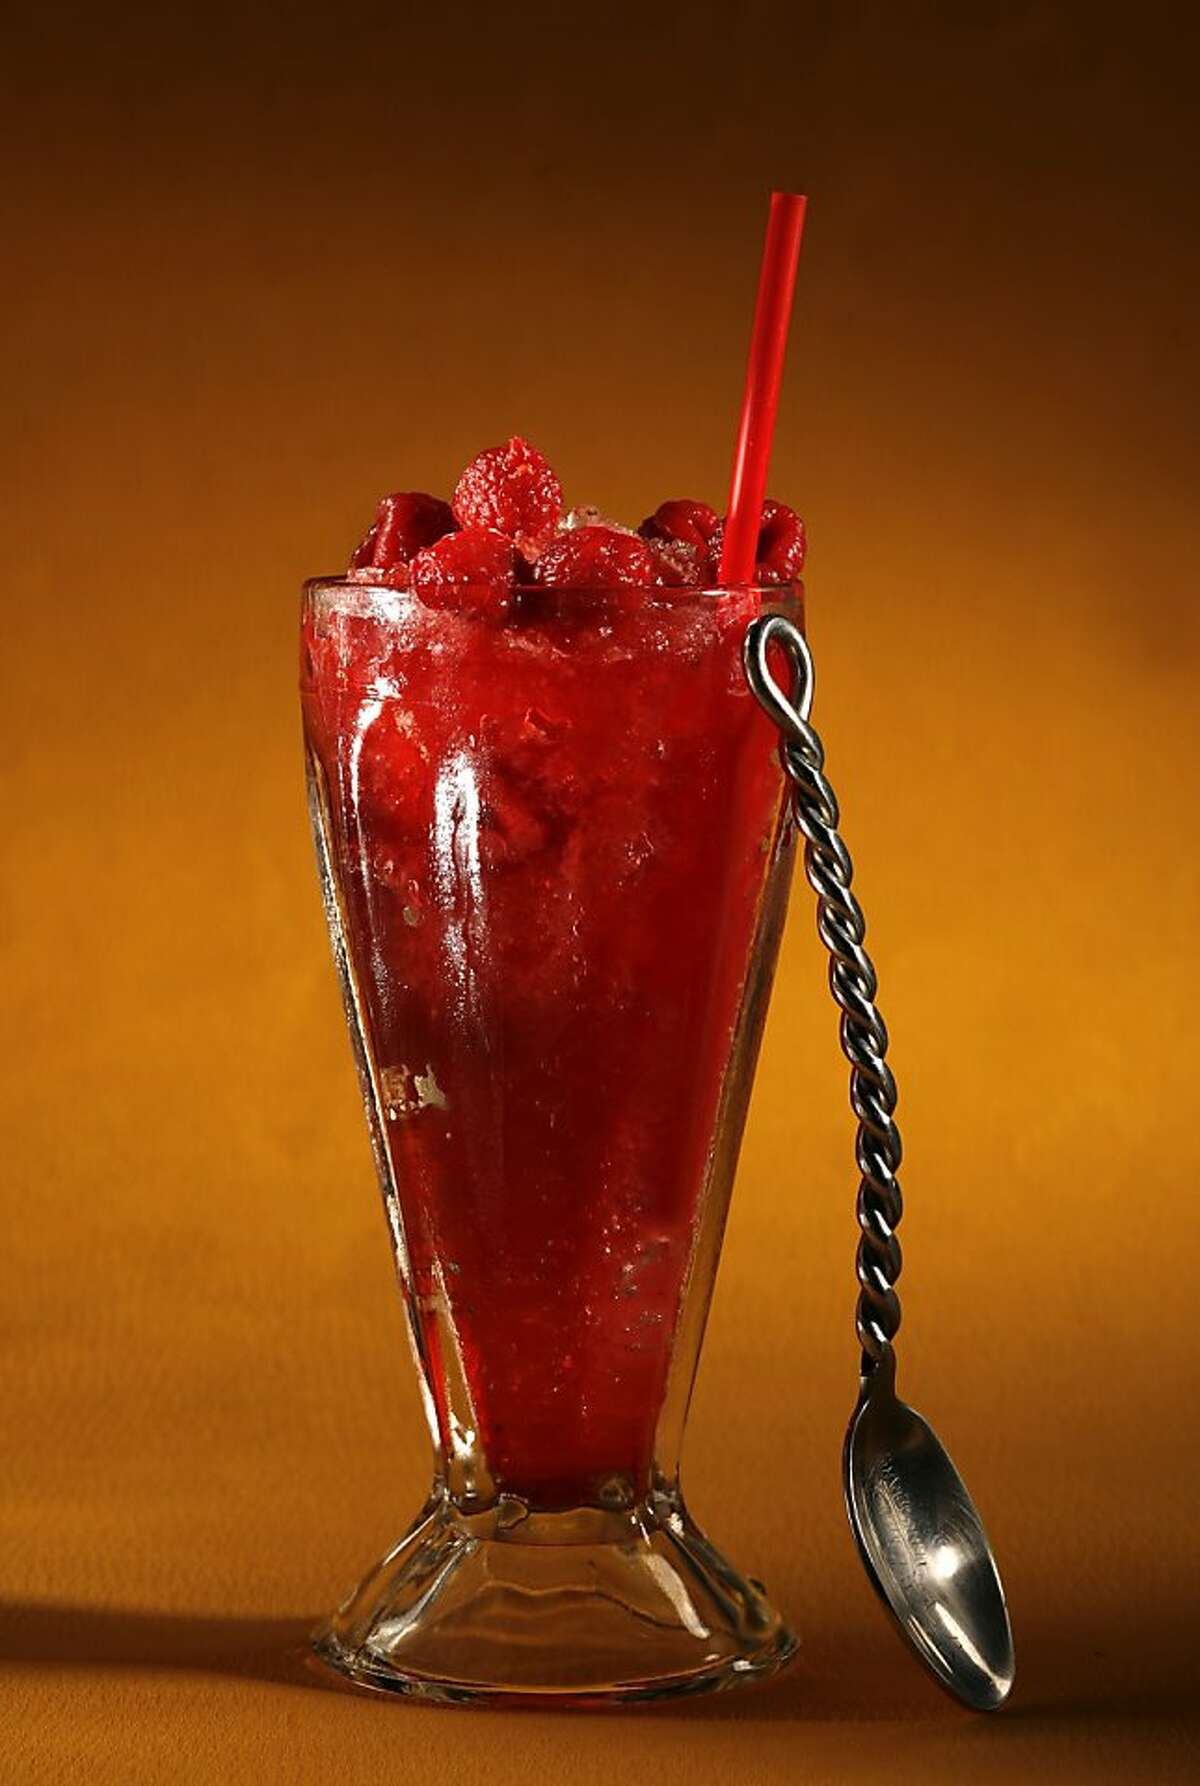 Mexican raspberry snow cone. Food styled by Rachael Daylong. Photo by Craig Lee